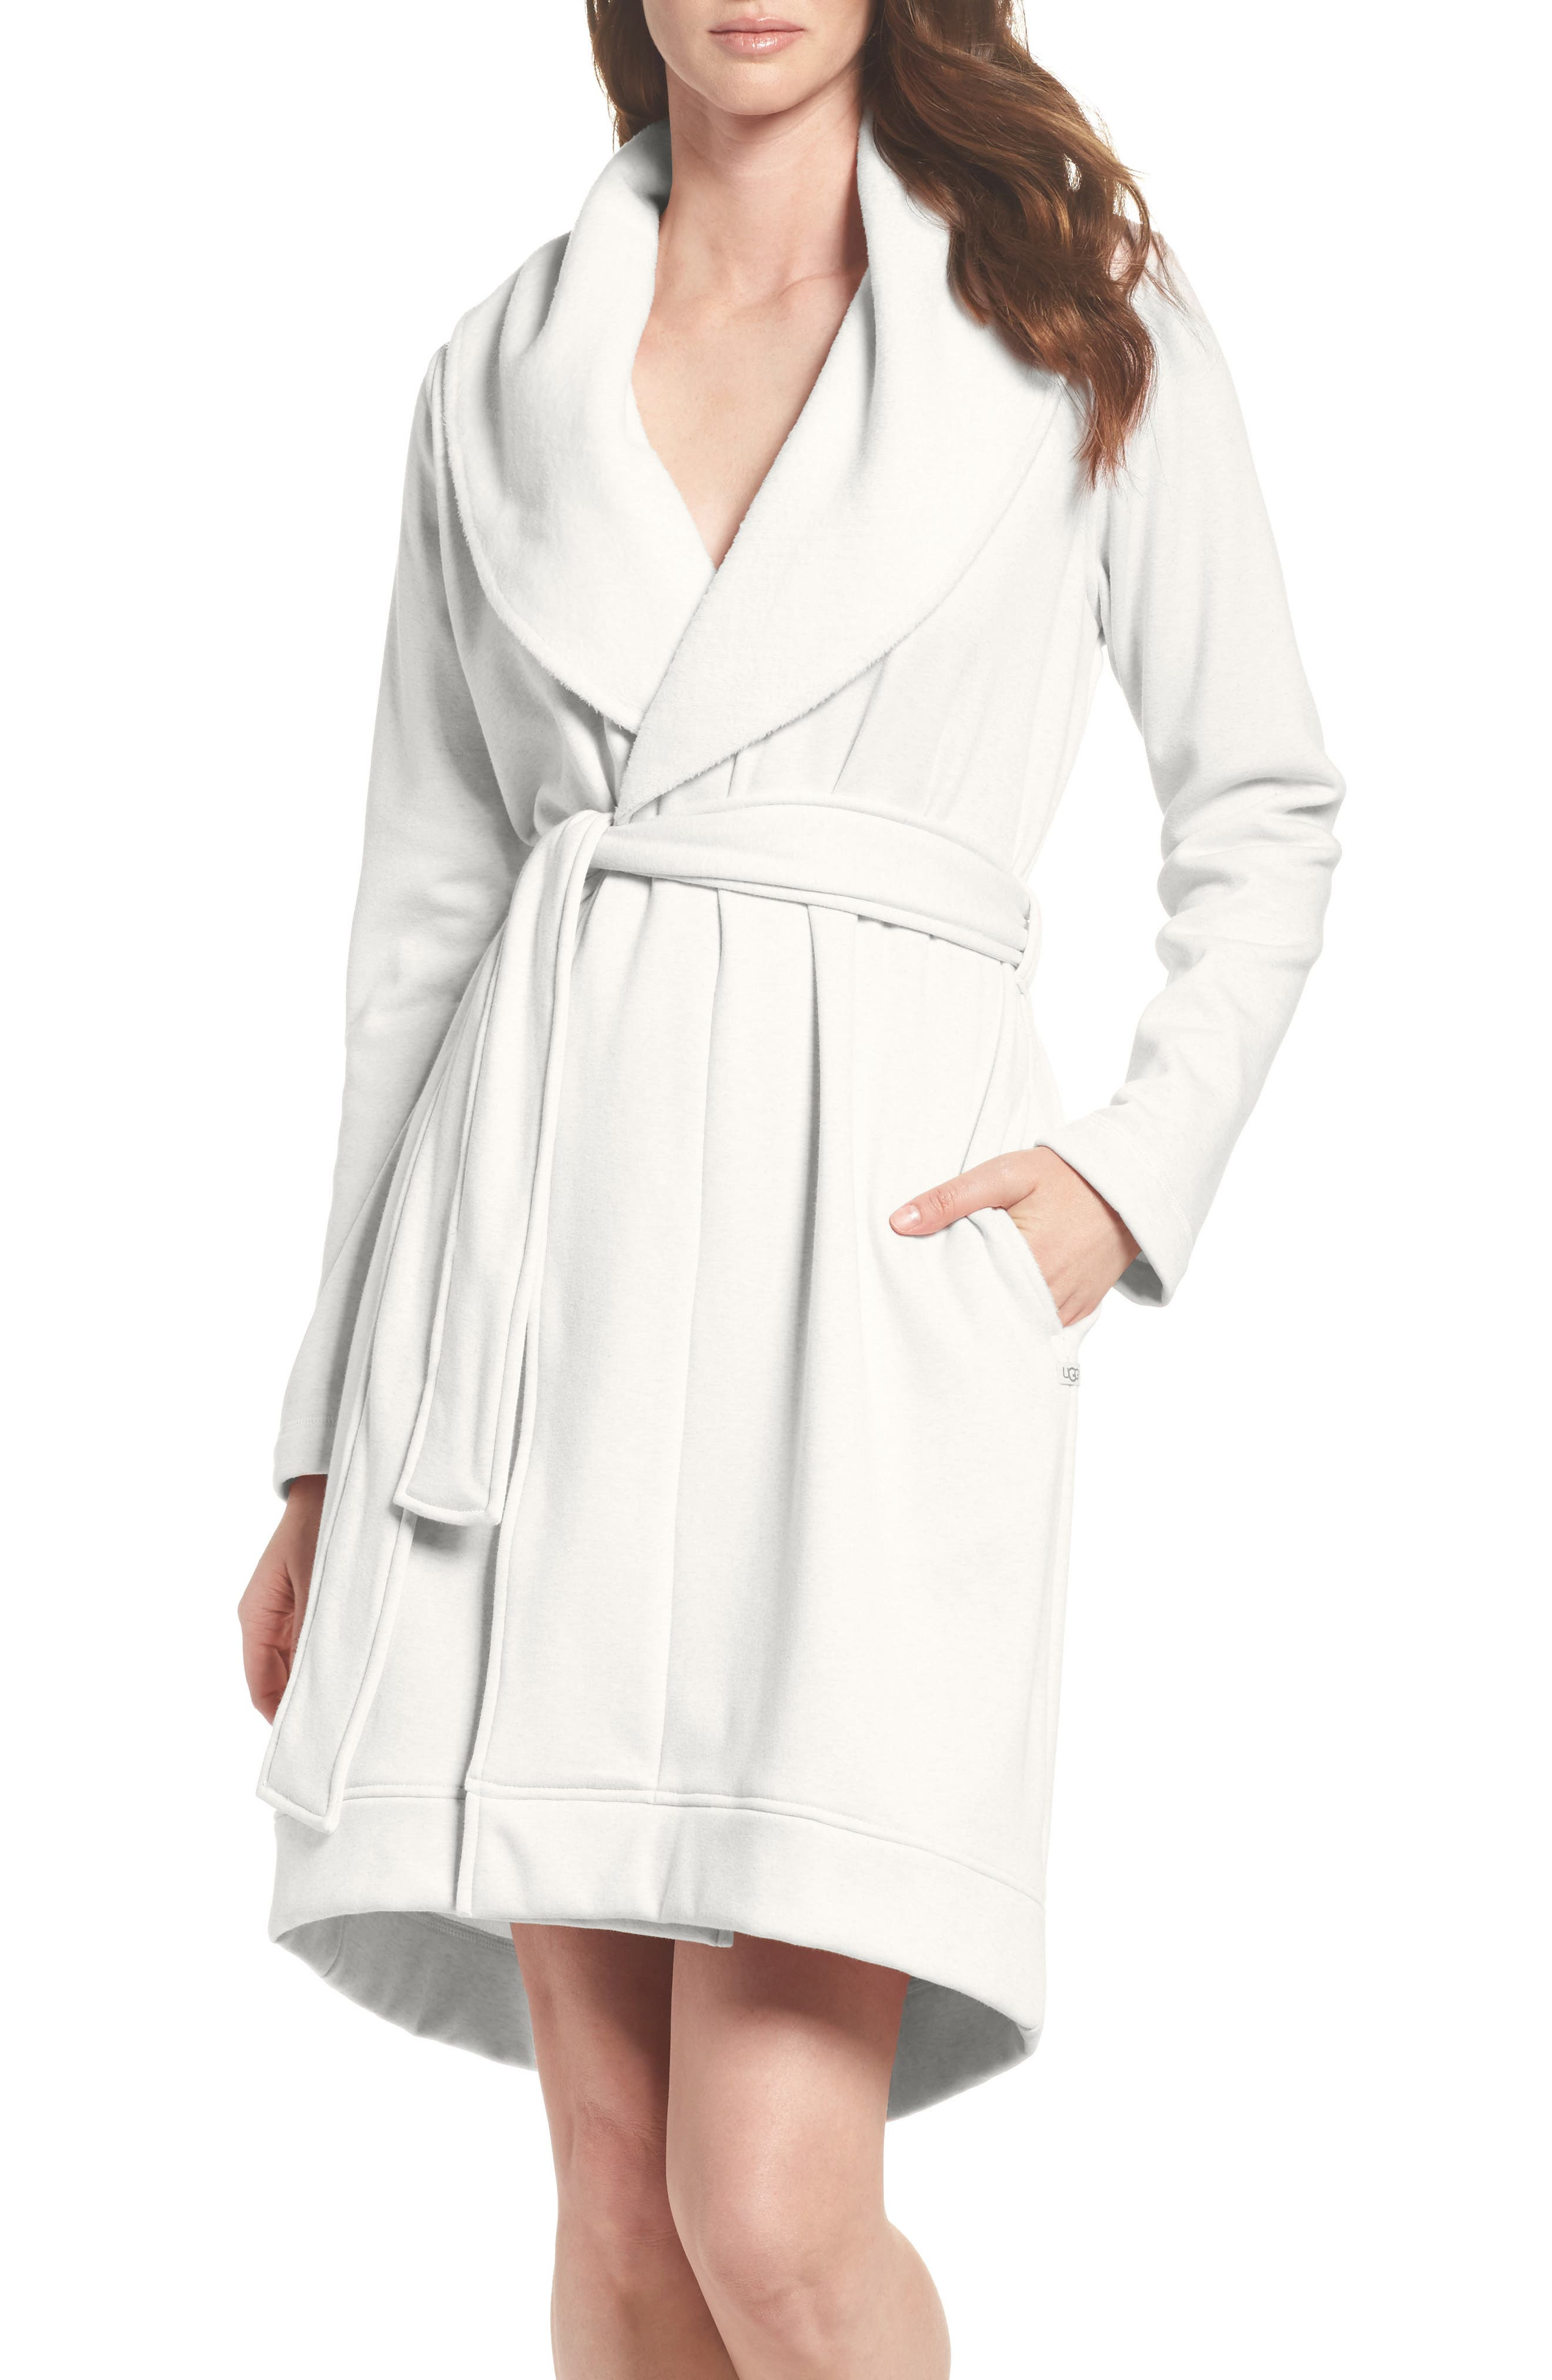 Alternate Image 1 Selected - UGG® 'Blanche' Robe